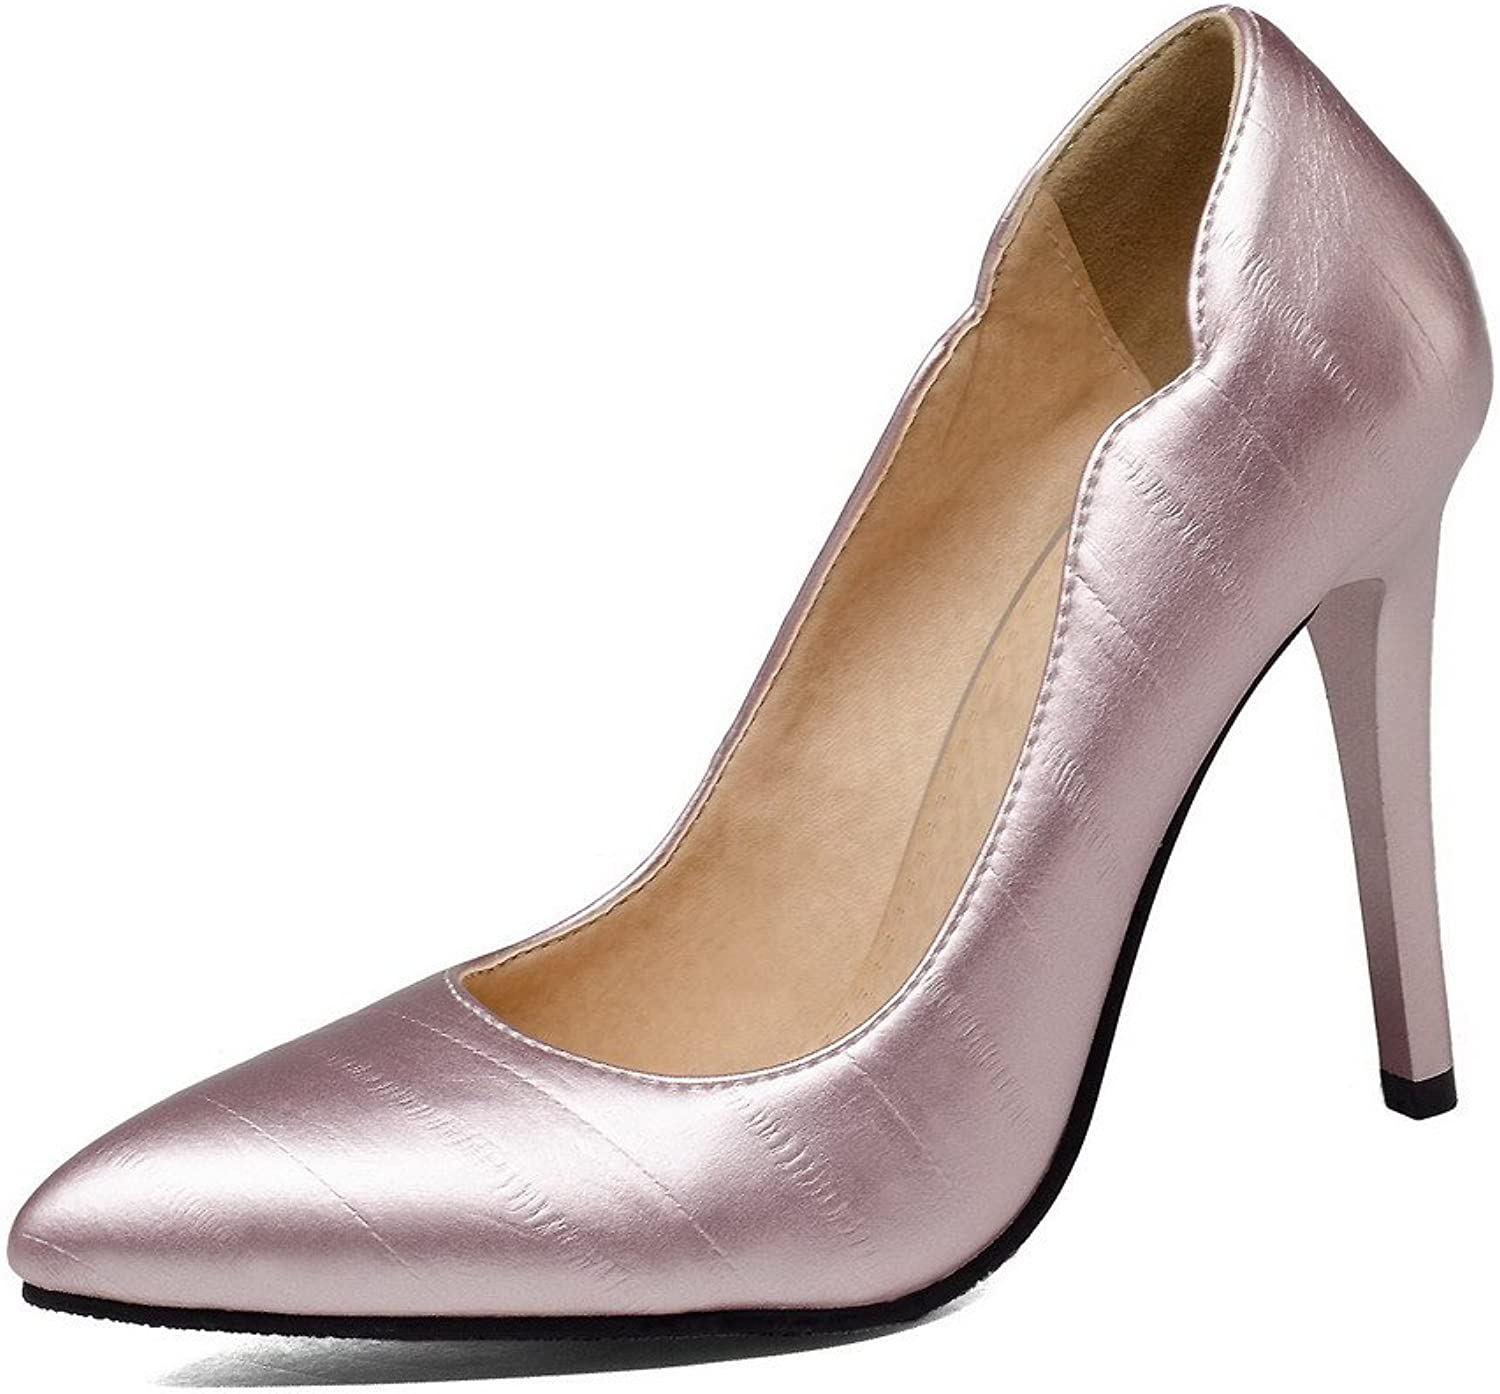 WeiPoot Women's Pull-on High-Heels PU Solid Round Closed Toe Pumps-shoes